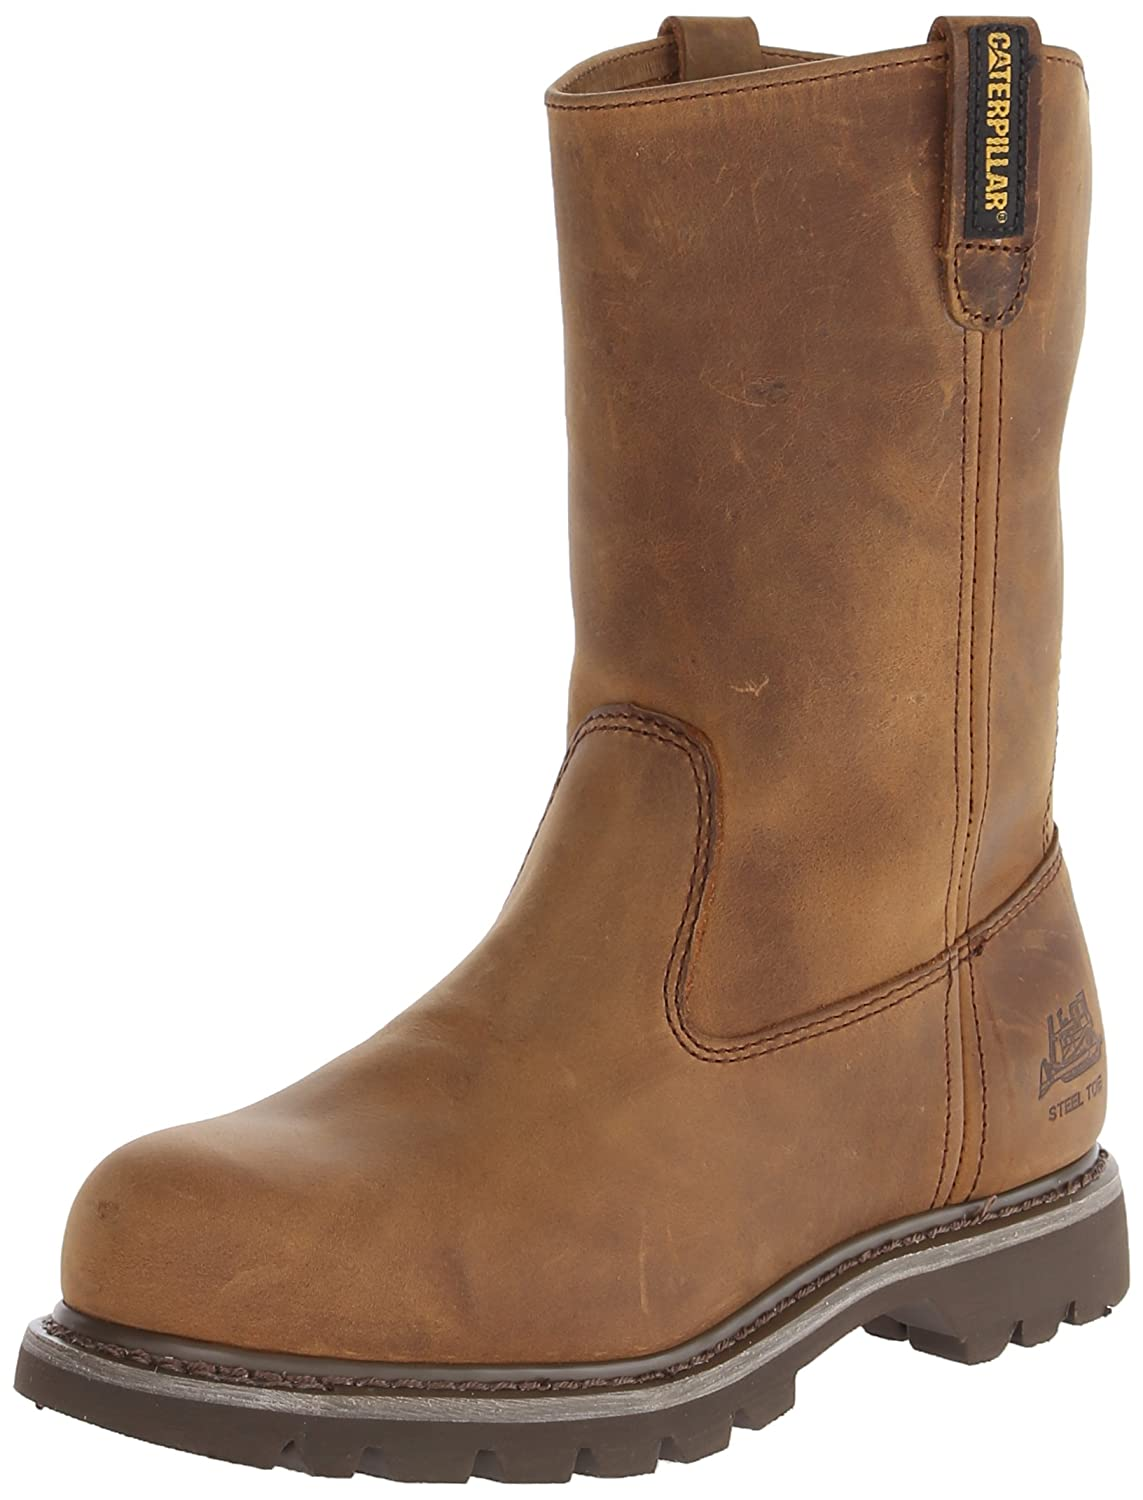 Caterpillar Women's Revolver Steel Toe Work Boot B00I85DZ24 6 C/D US|Dark Beige